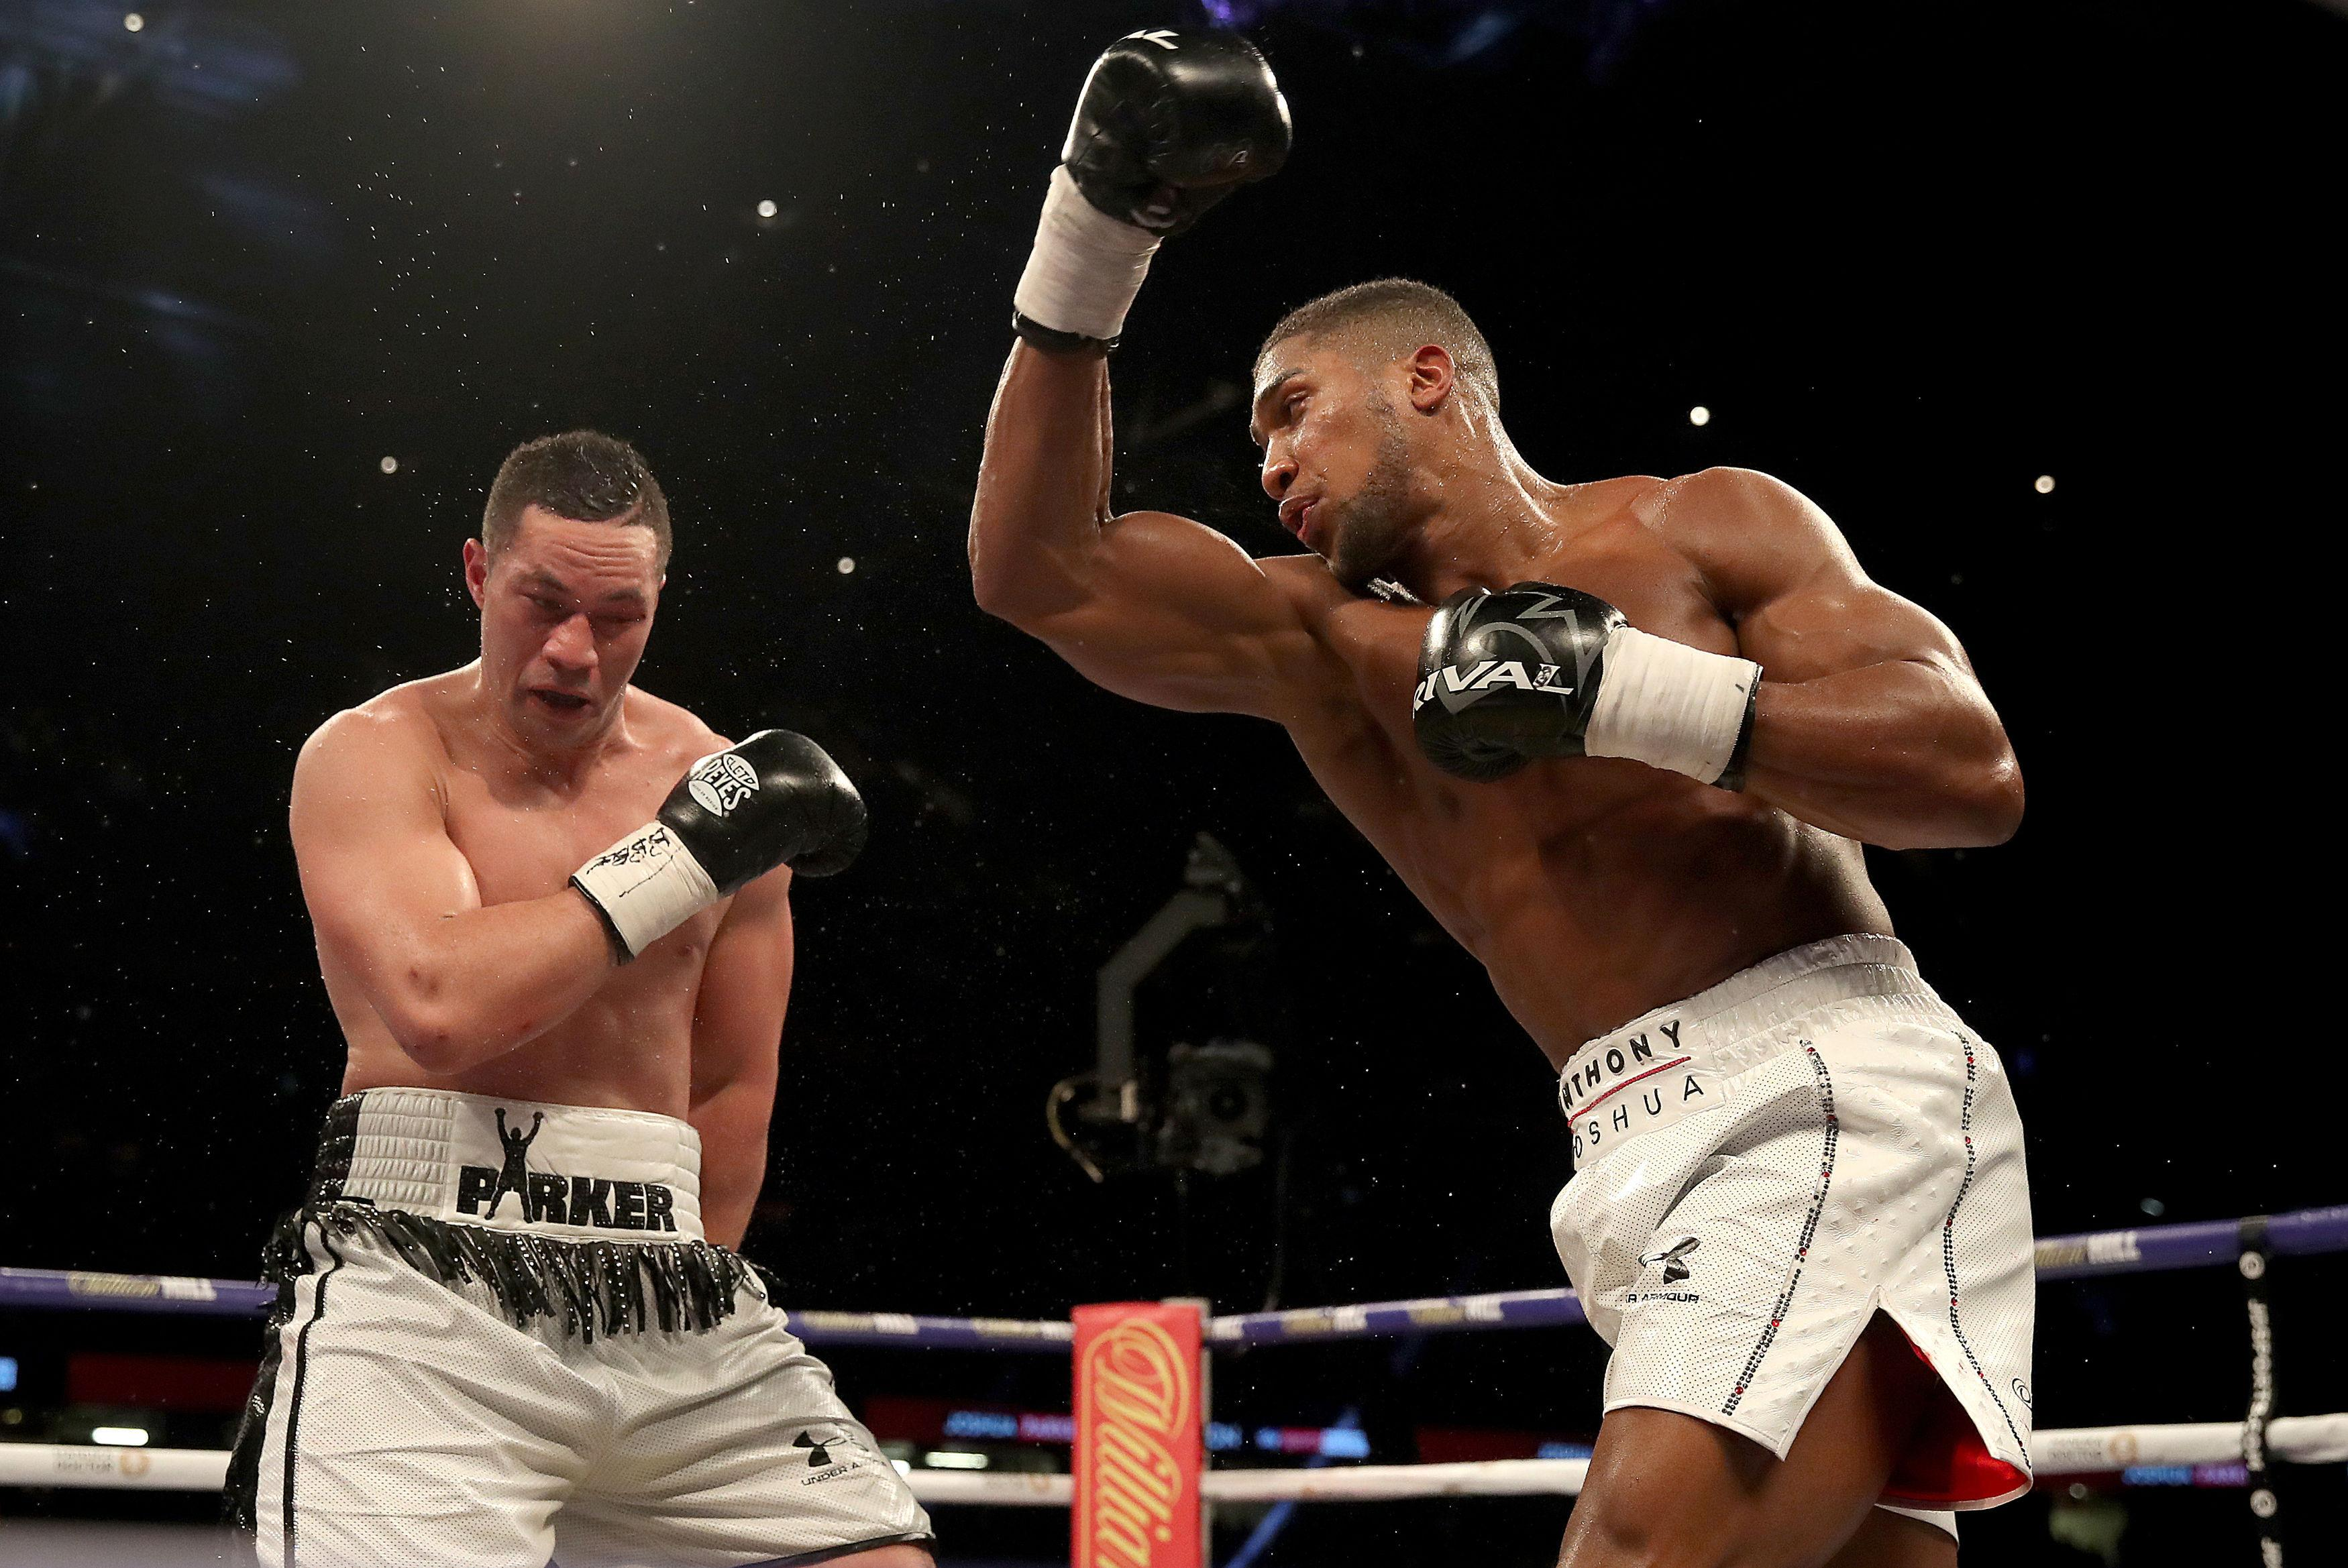 Anthony Joshua and Joshua Parker battled it out over 12 rounds in March